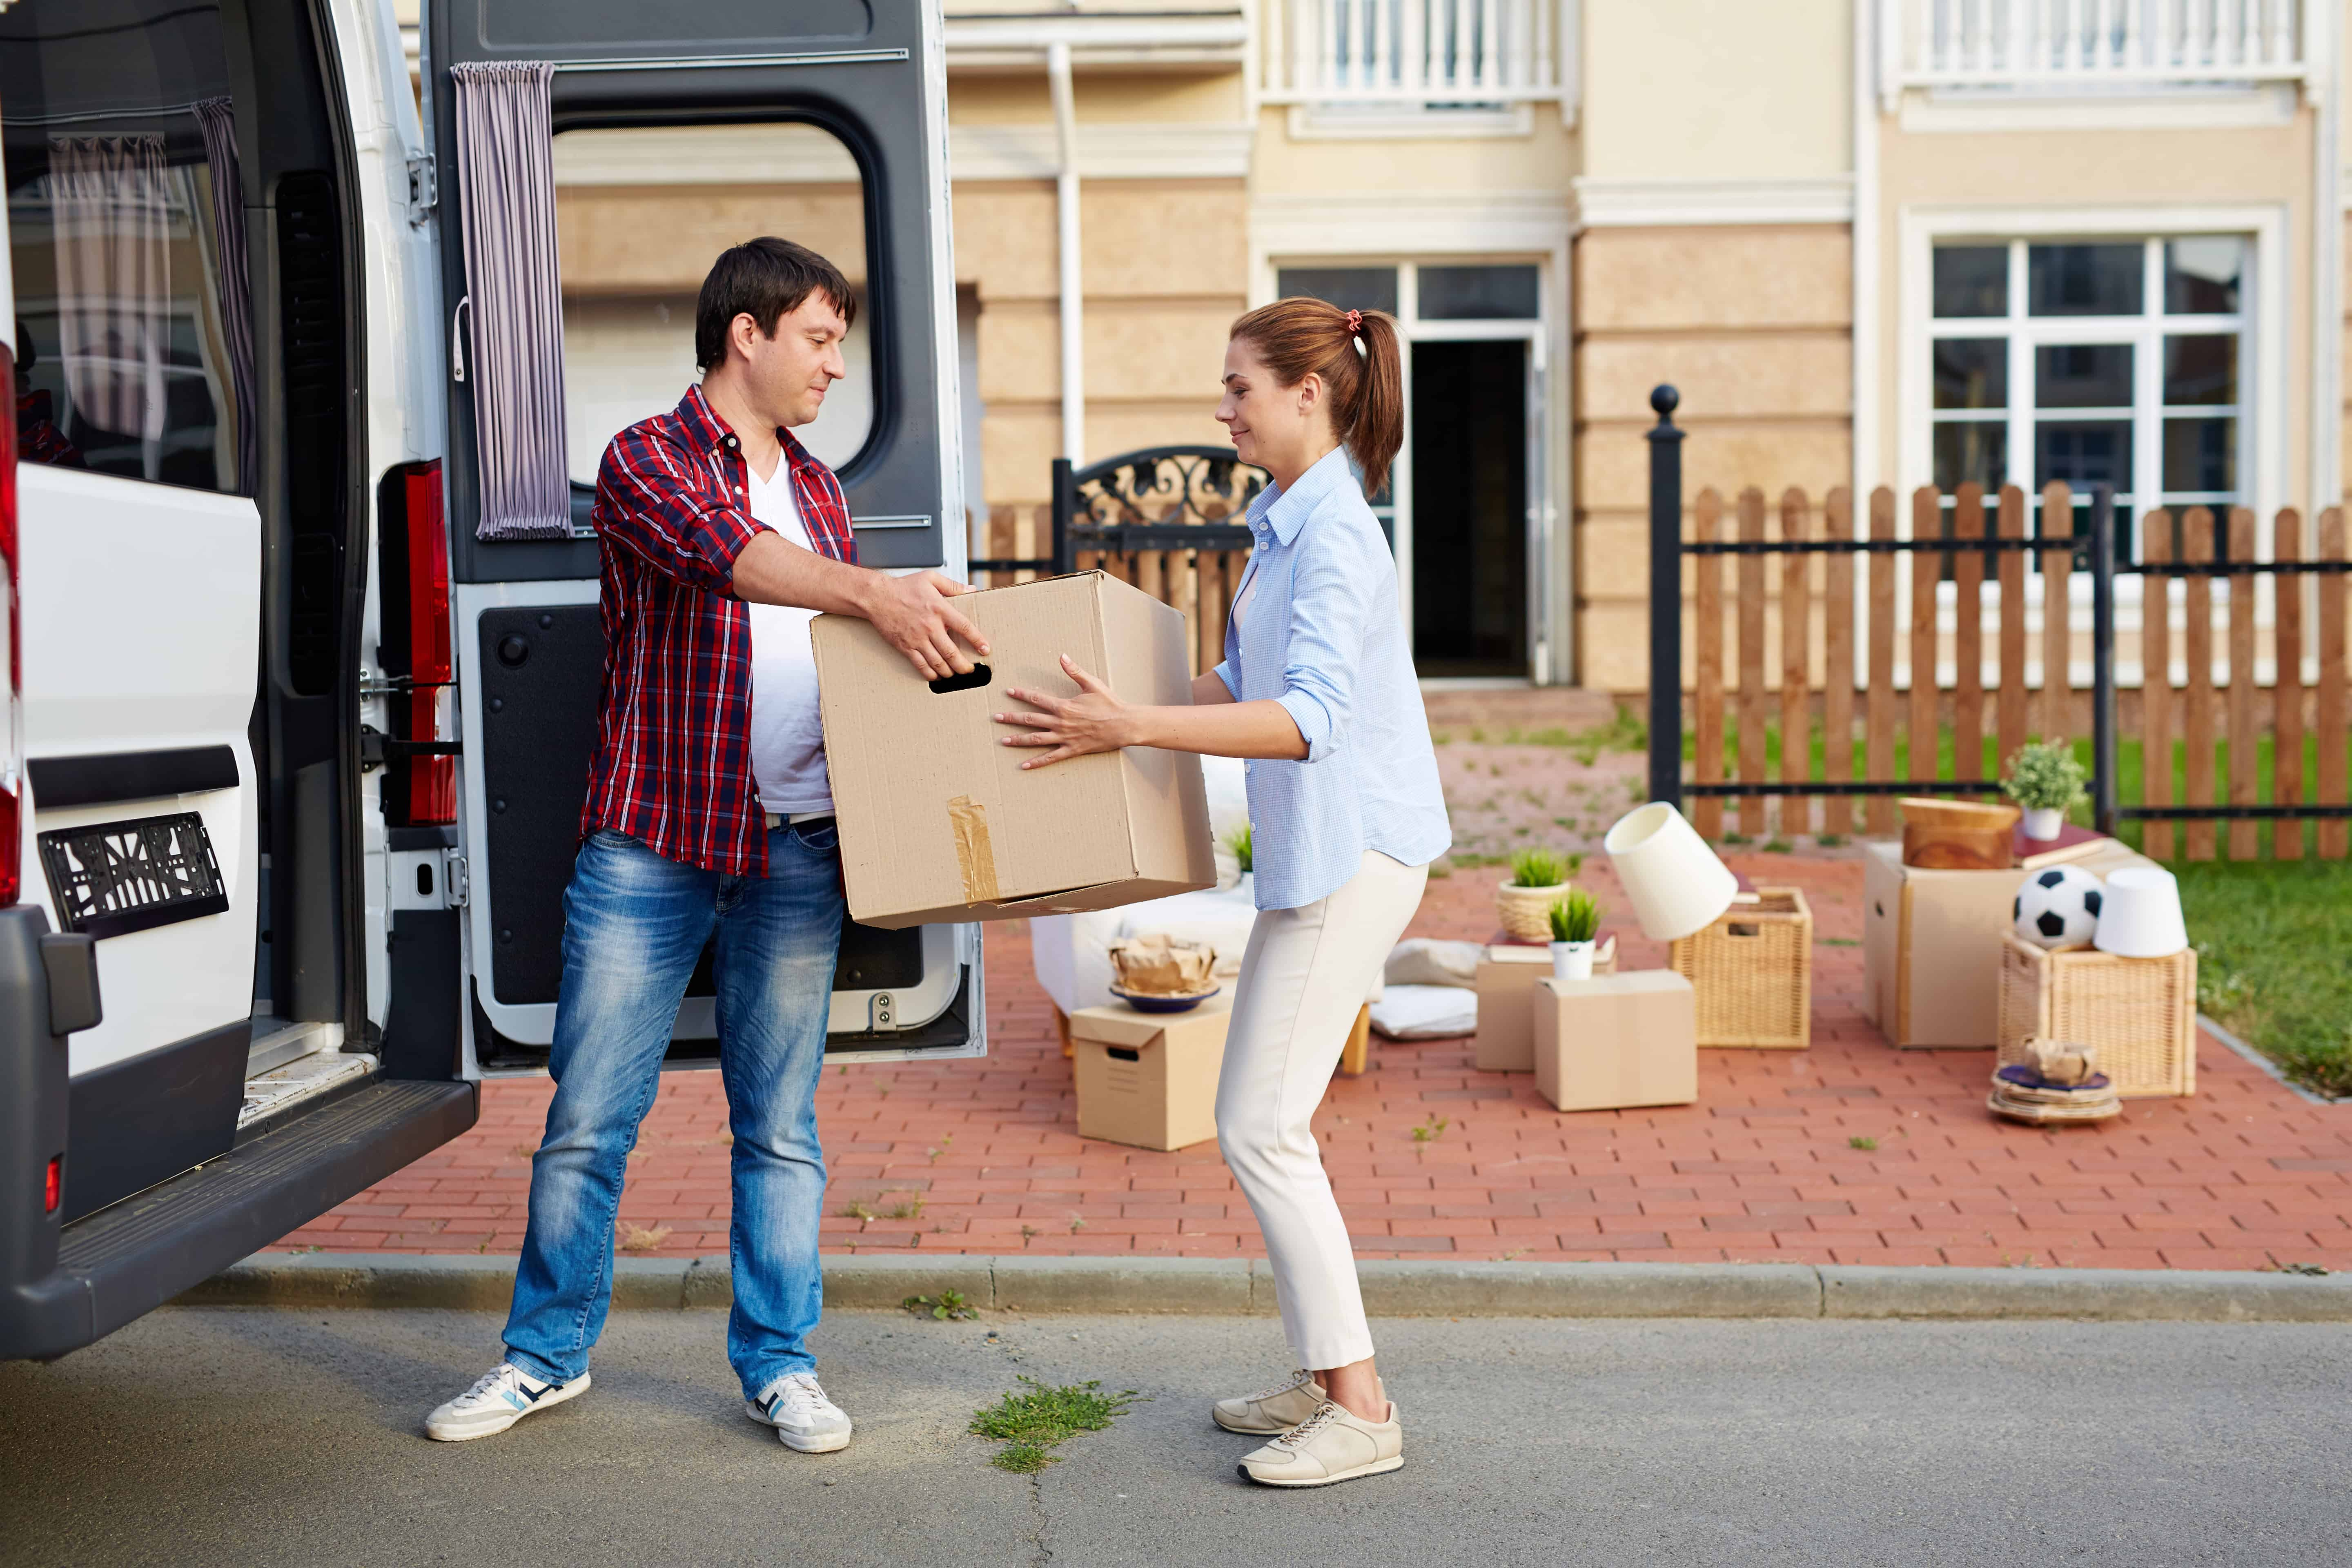 5 Things to Do First Thing When Moving Into a New Home